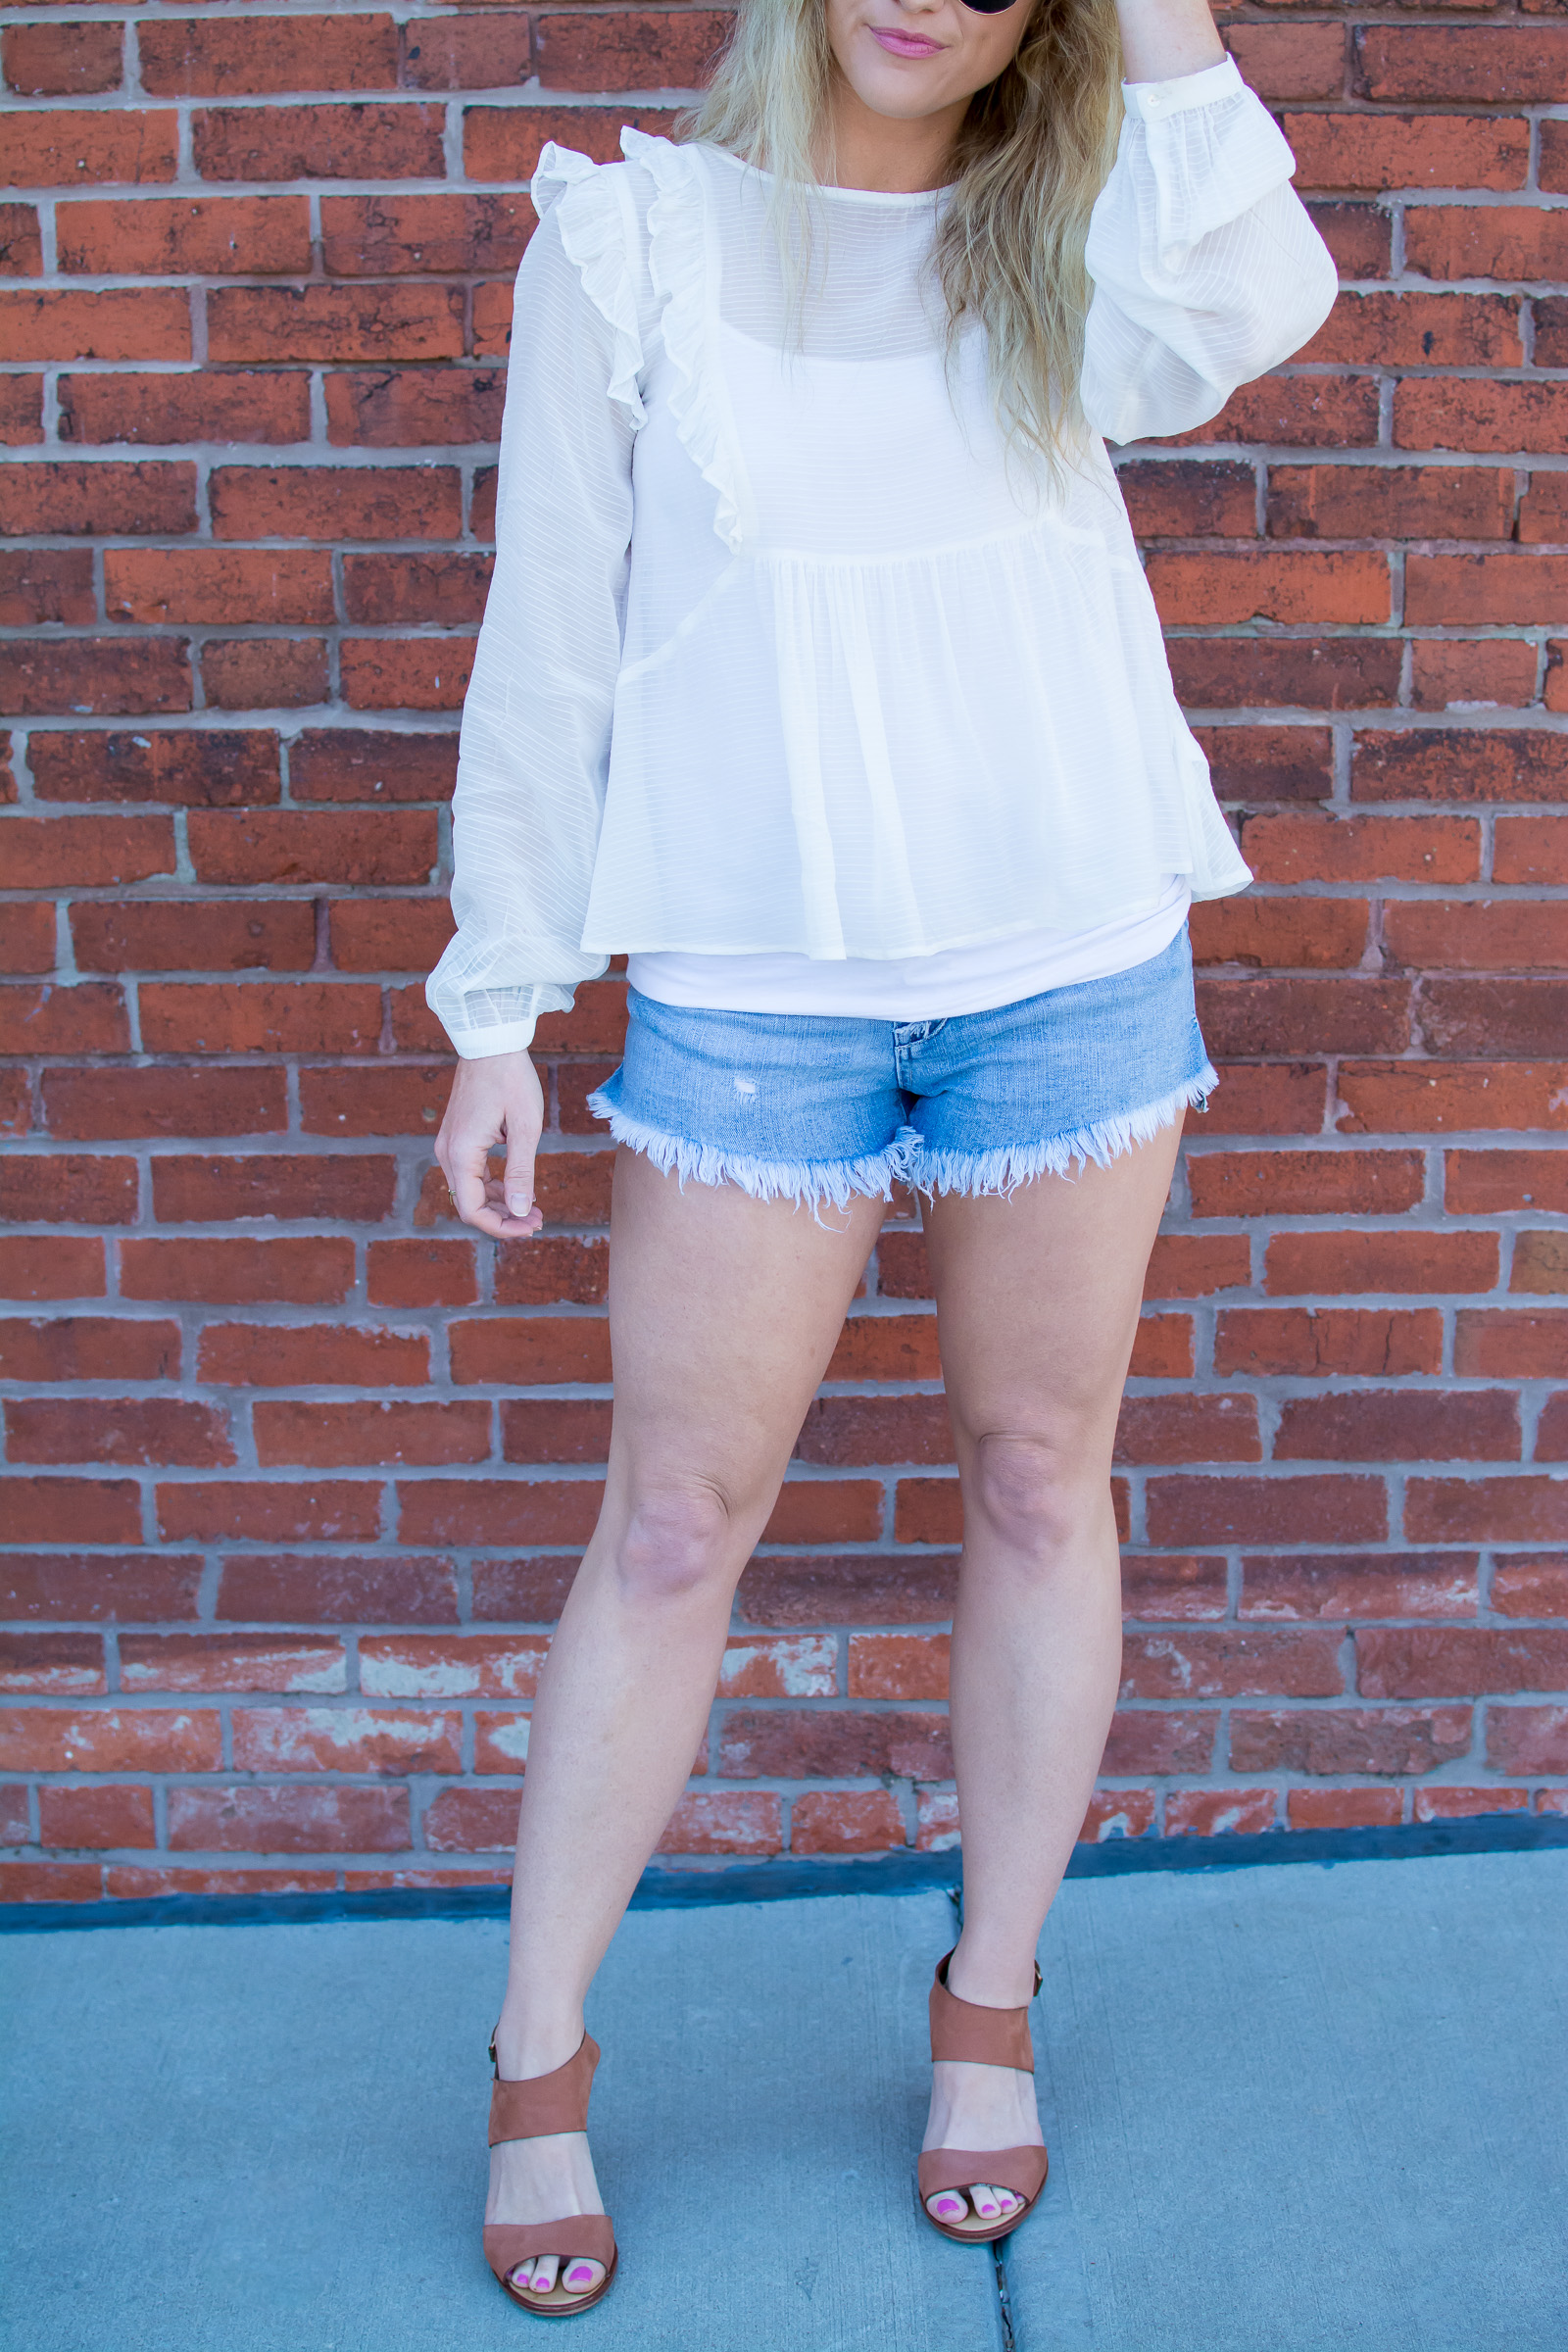 Dressing Up Cutoff Denim with Wedges. | Ashley from Le Stylo Rouge